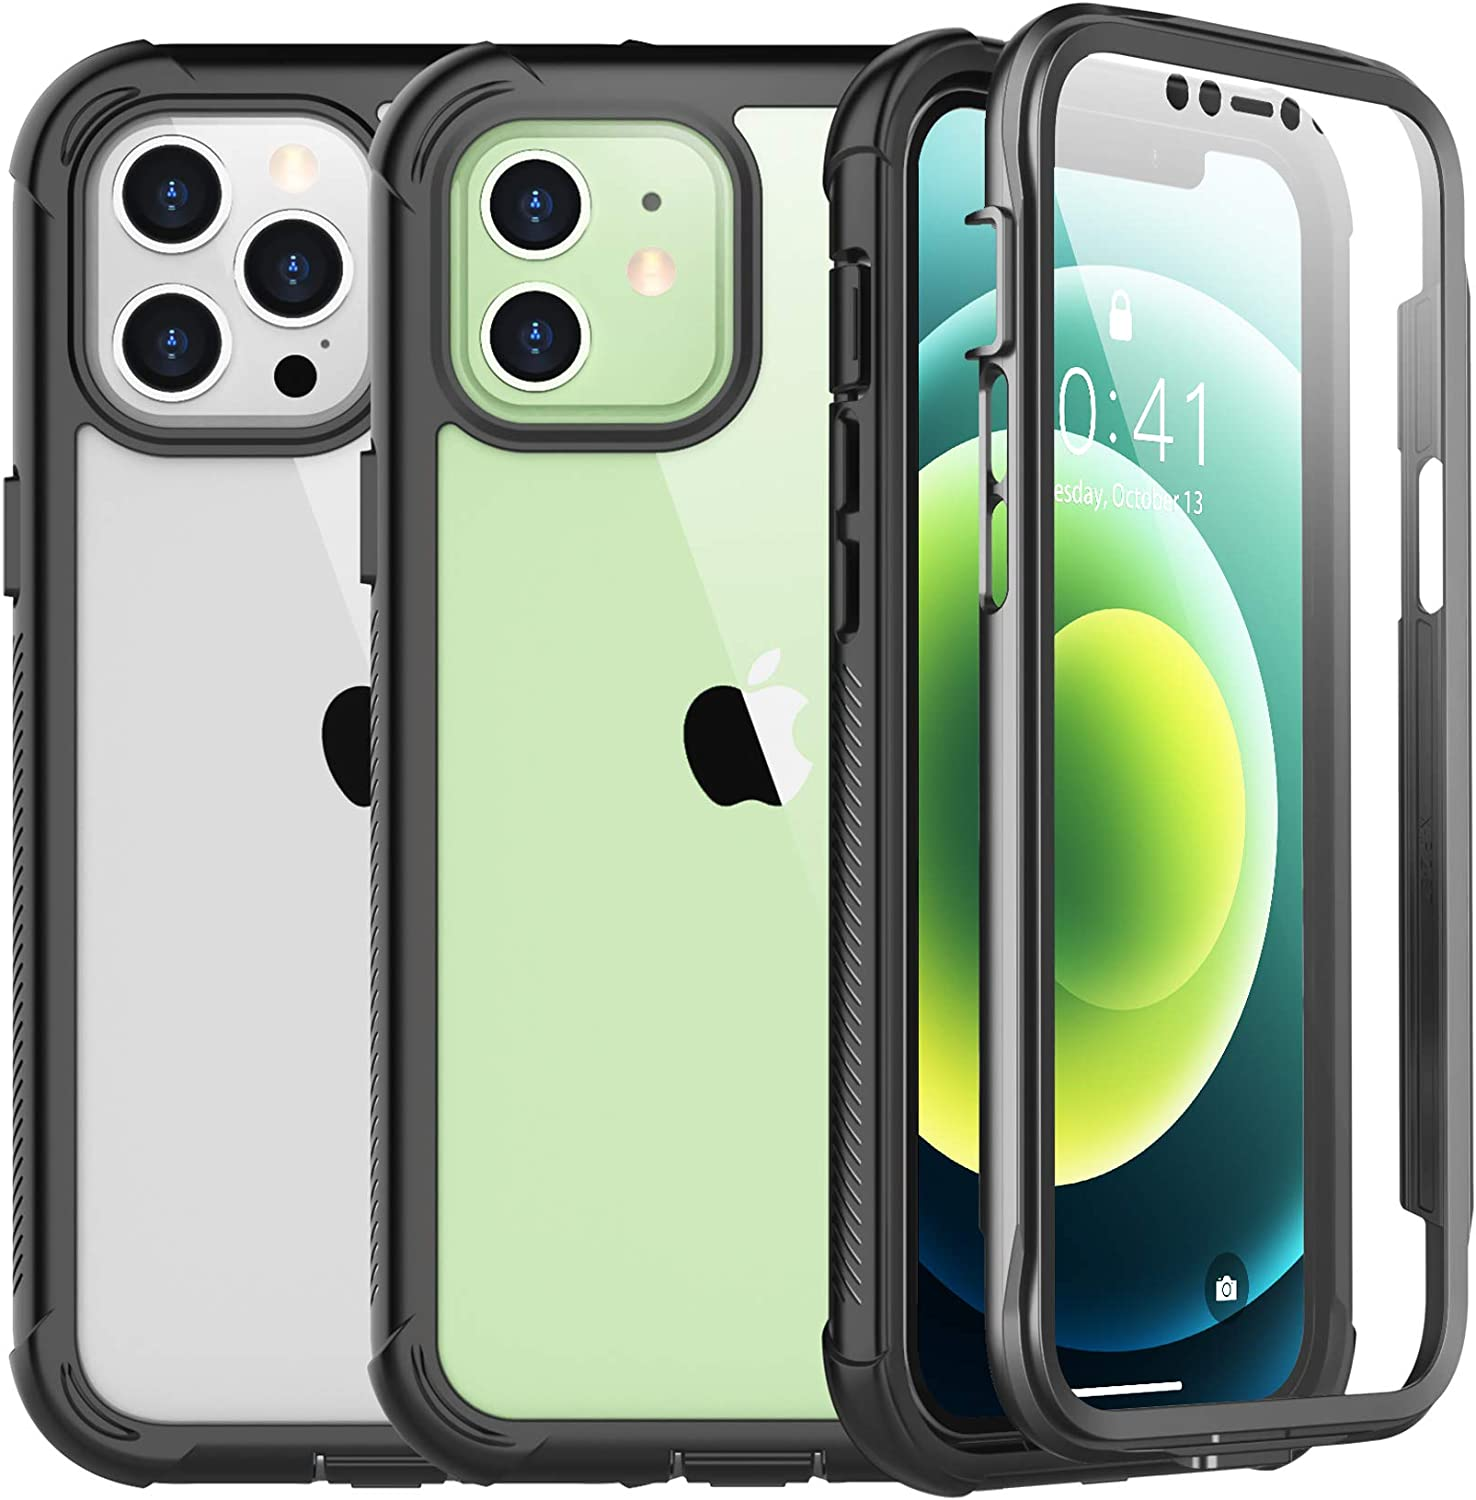 SPIDERCASE for iPhone 12 Case/for iPhone 12 Pro Case, Built-in Screen Protector, Full Protective Case, Camera&Screen Protection, Anti-Scratched Rugged Case for iPhone 12/for iPhone 12 Pro 2020